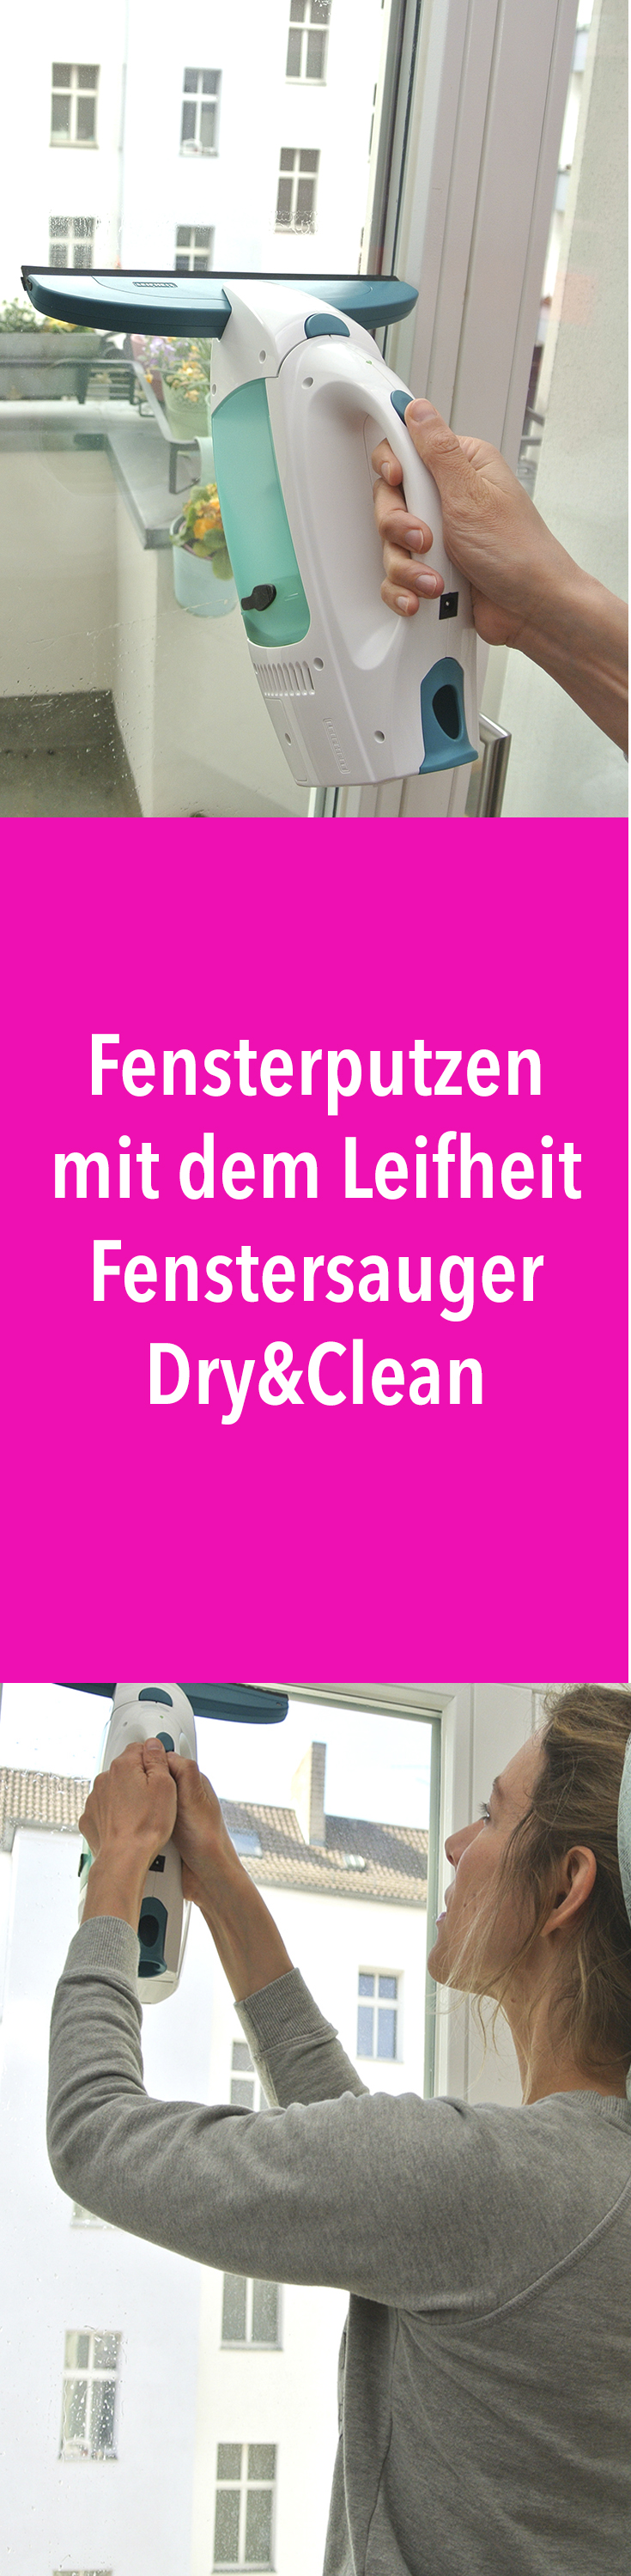 fr hjahrsputz fensterputzen mit dem leifheit fenstersauger dry clean werbung rosanisiert. Black Bedroom Furniture Sets. Home Design Ideas